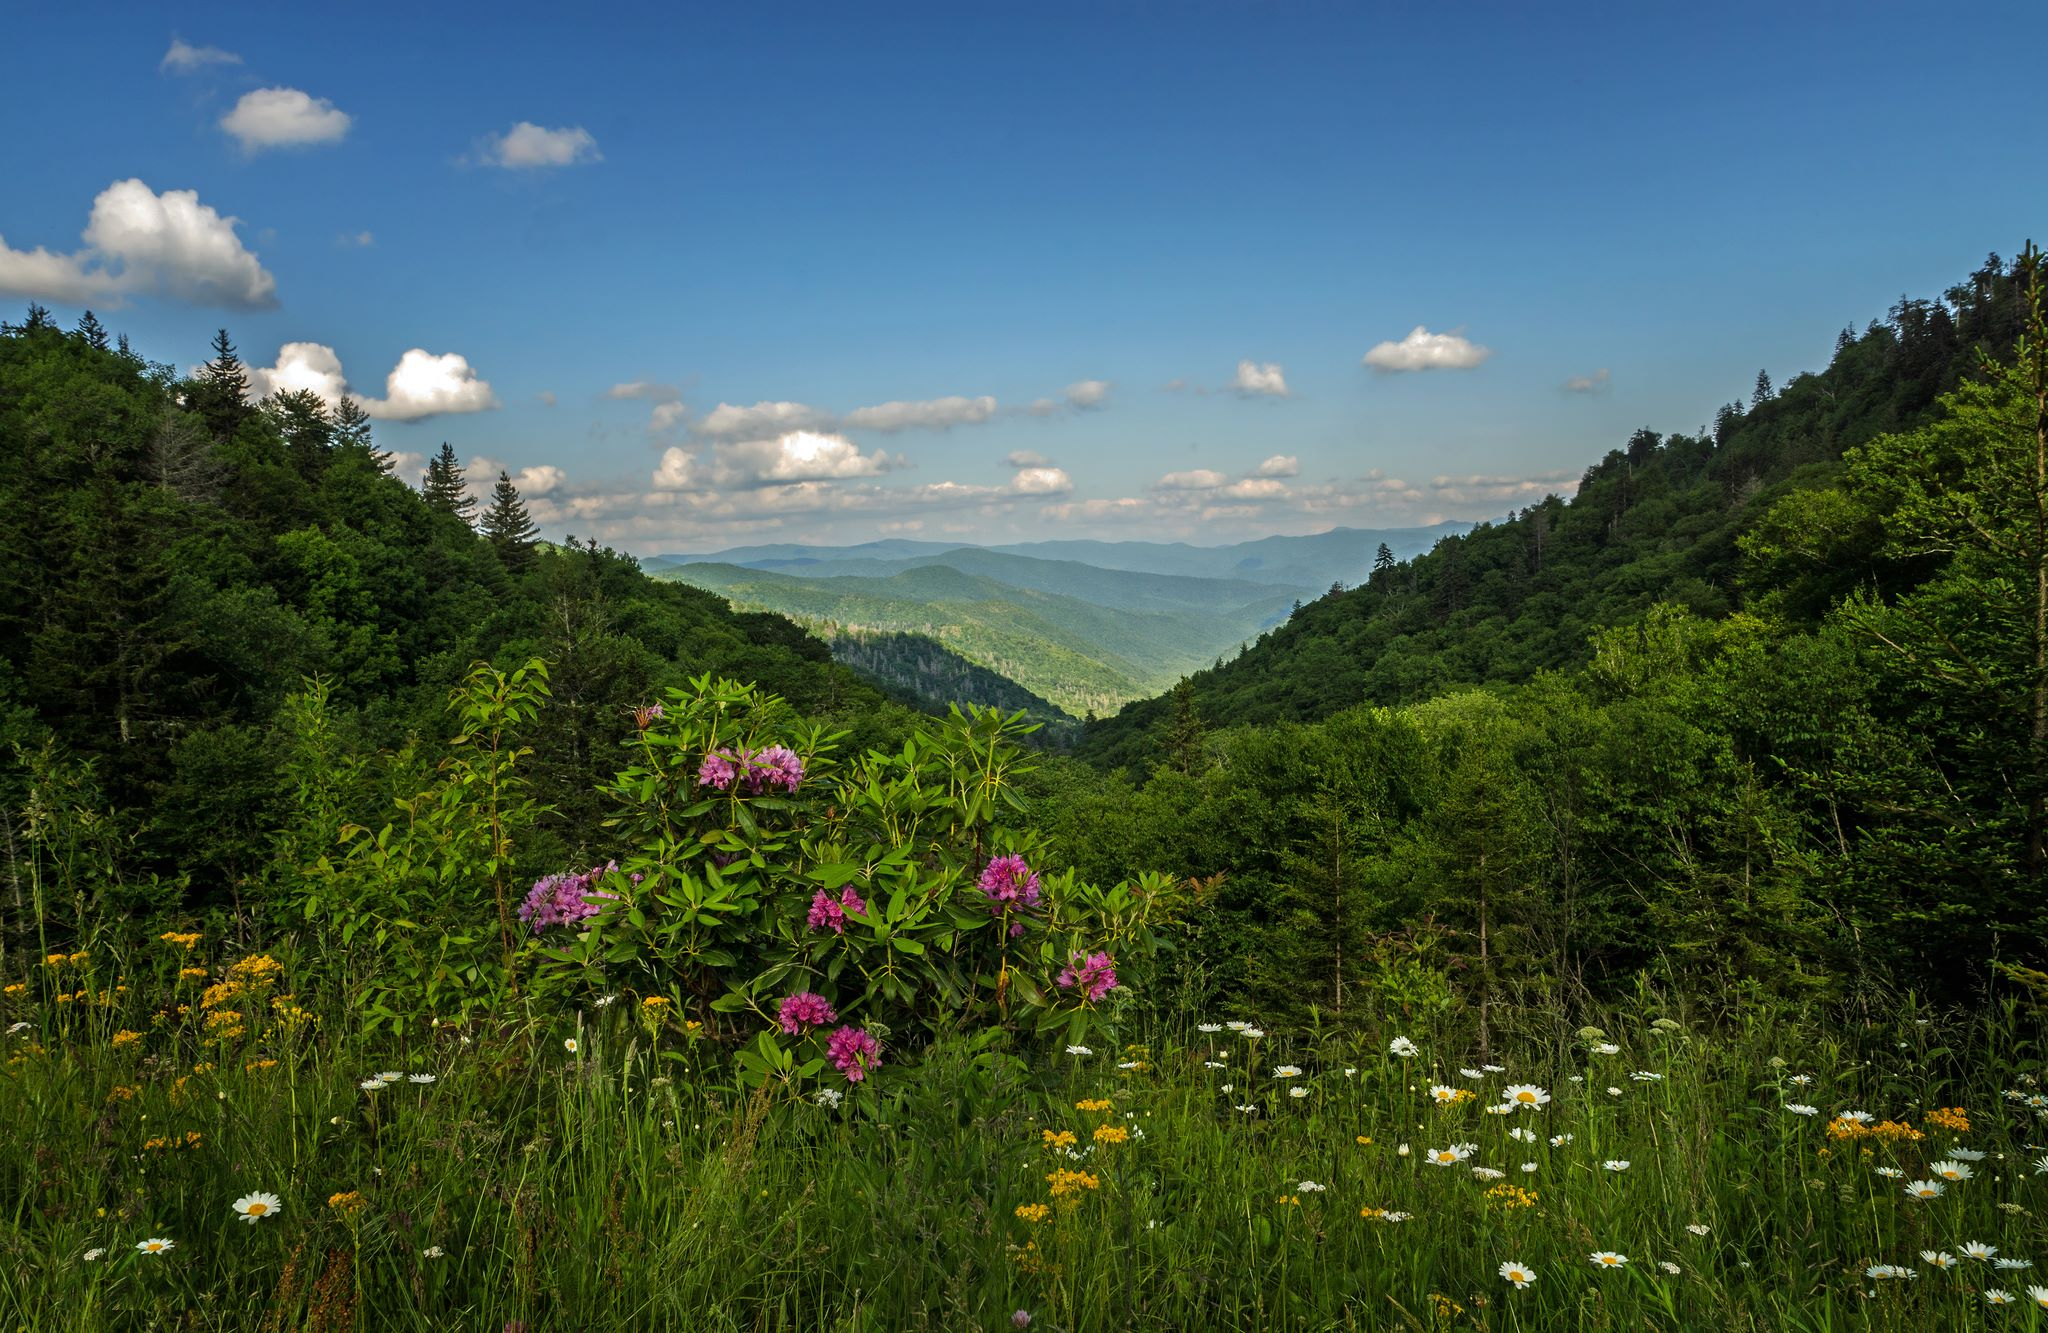 smoky mountains Book your tickets online for the top things to do in great smoky mountains  national park, tennessee on tripadvisor: see 170350 traveler reviews and  photos of.